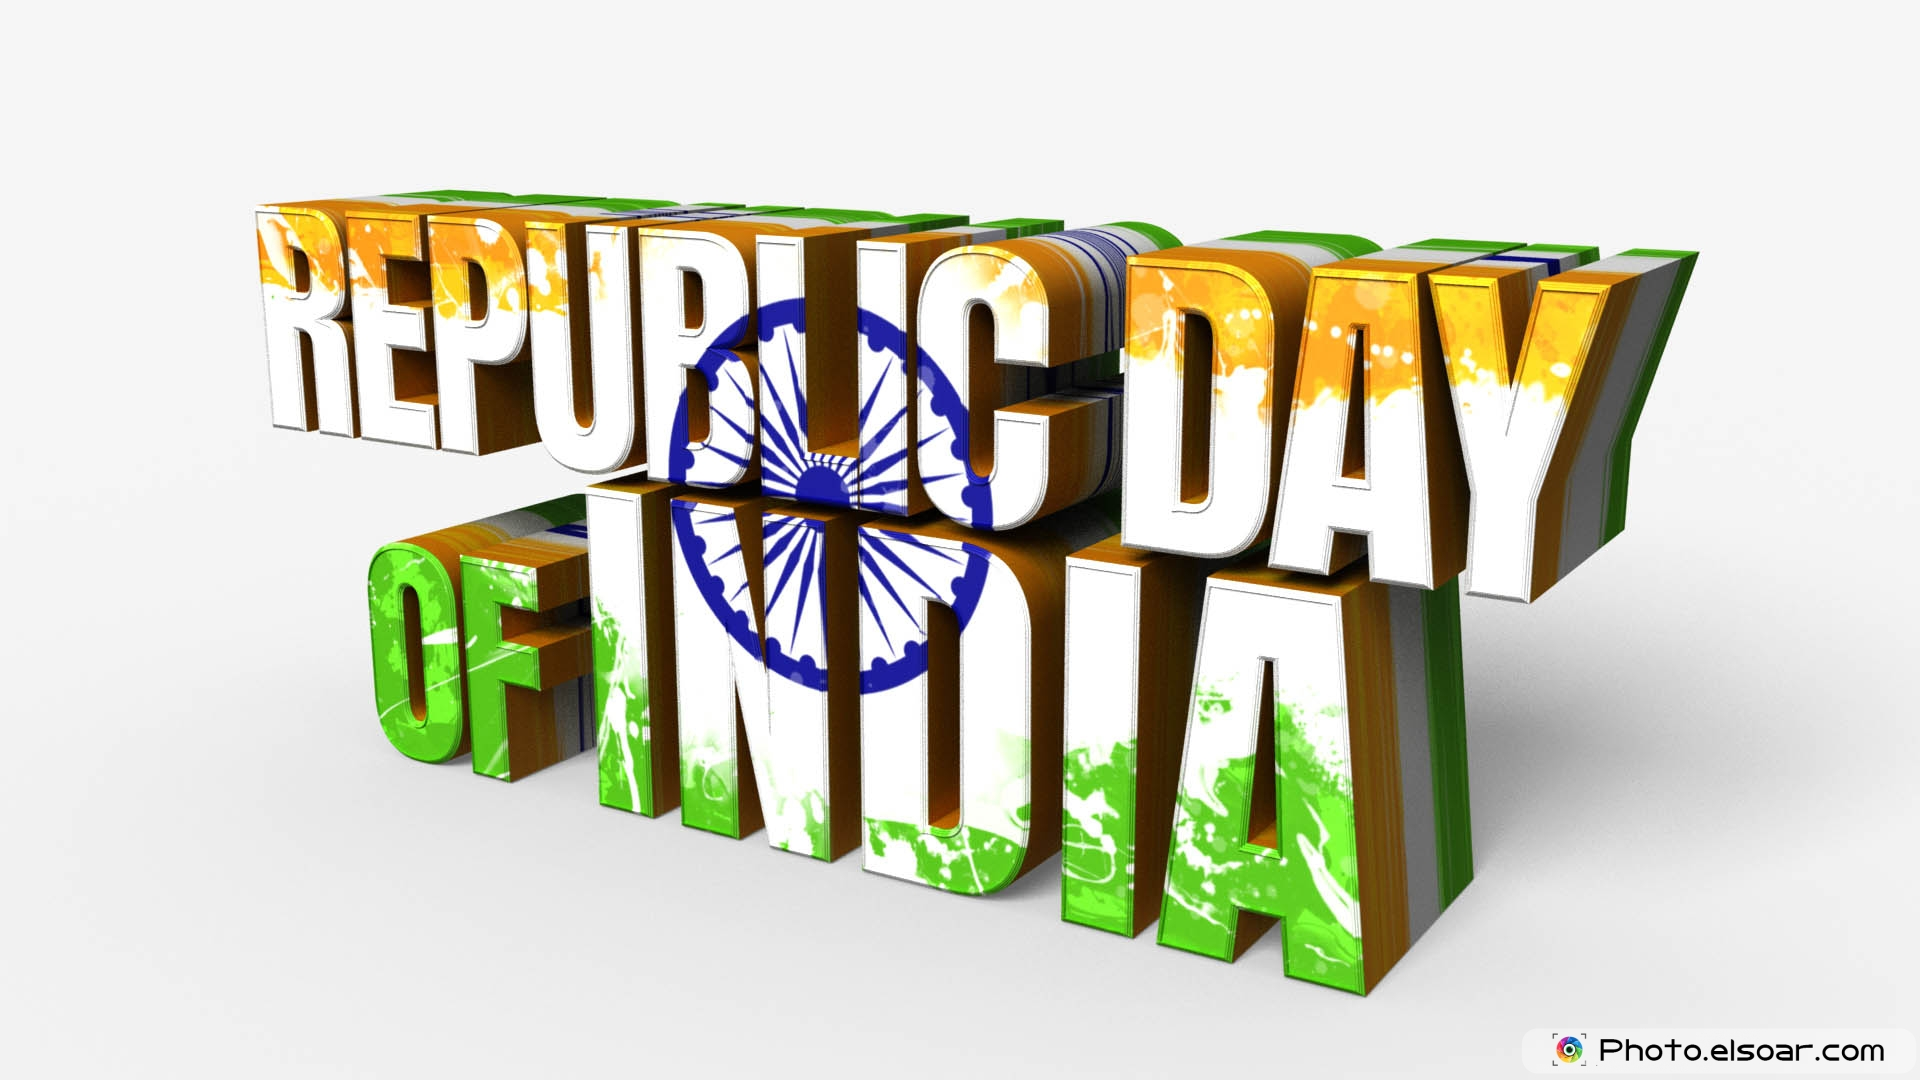 Happy Republic Day India   Full Story Images In 365 Days   ELSOAR 1920x1080